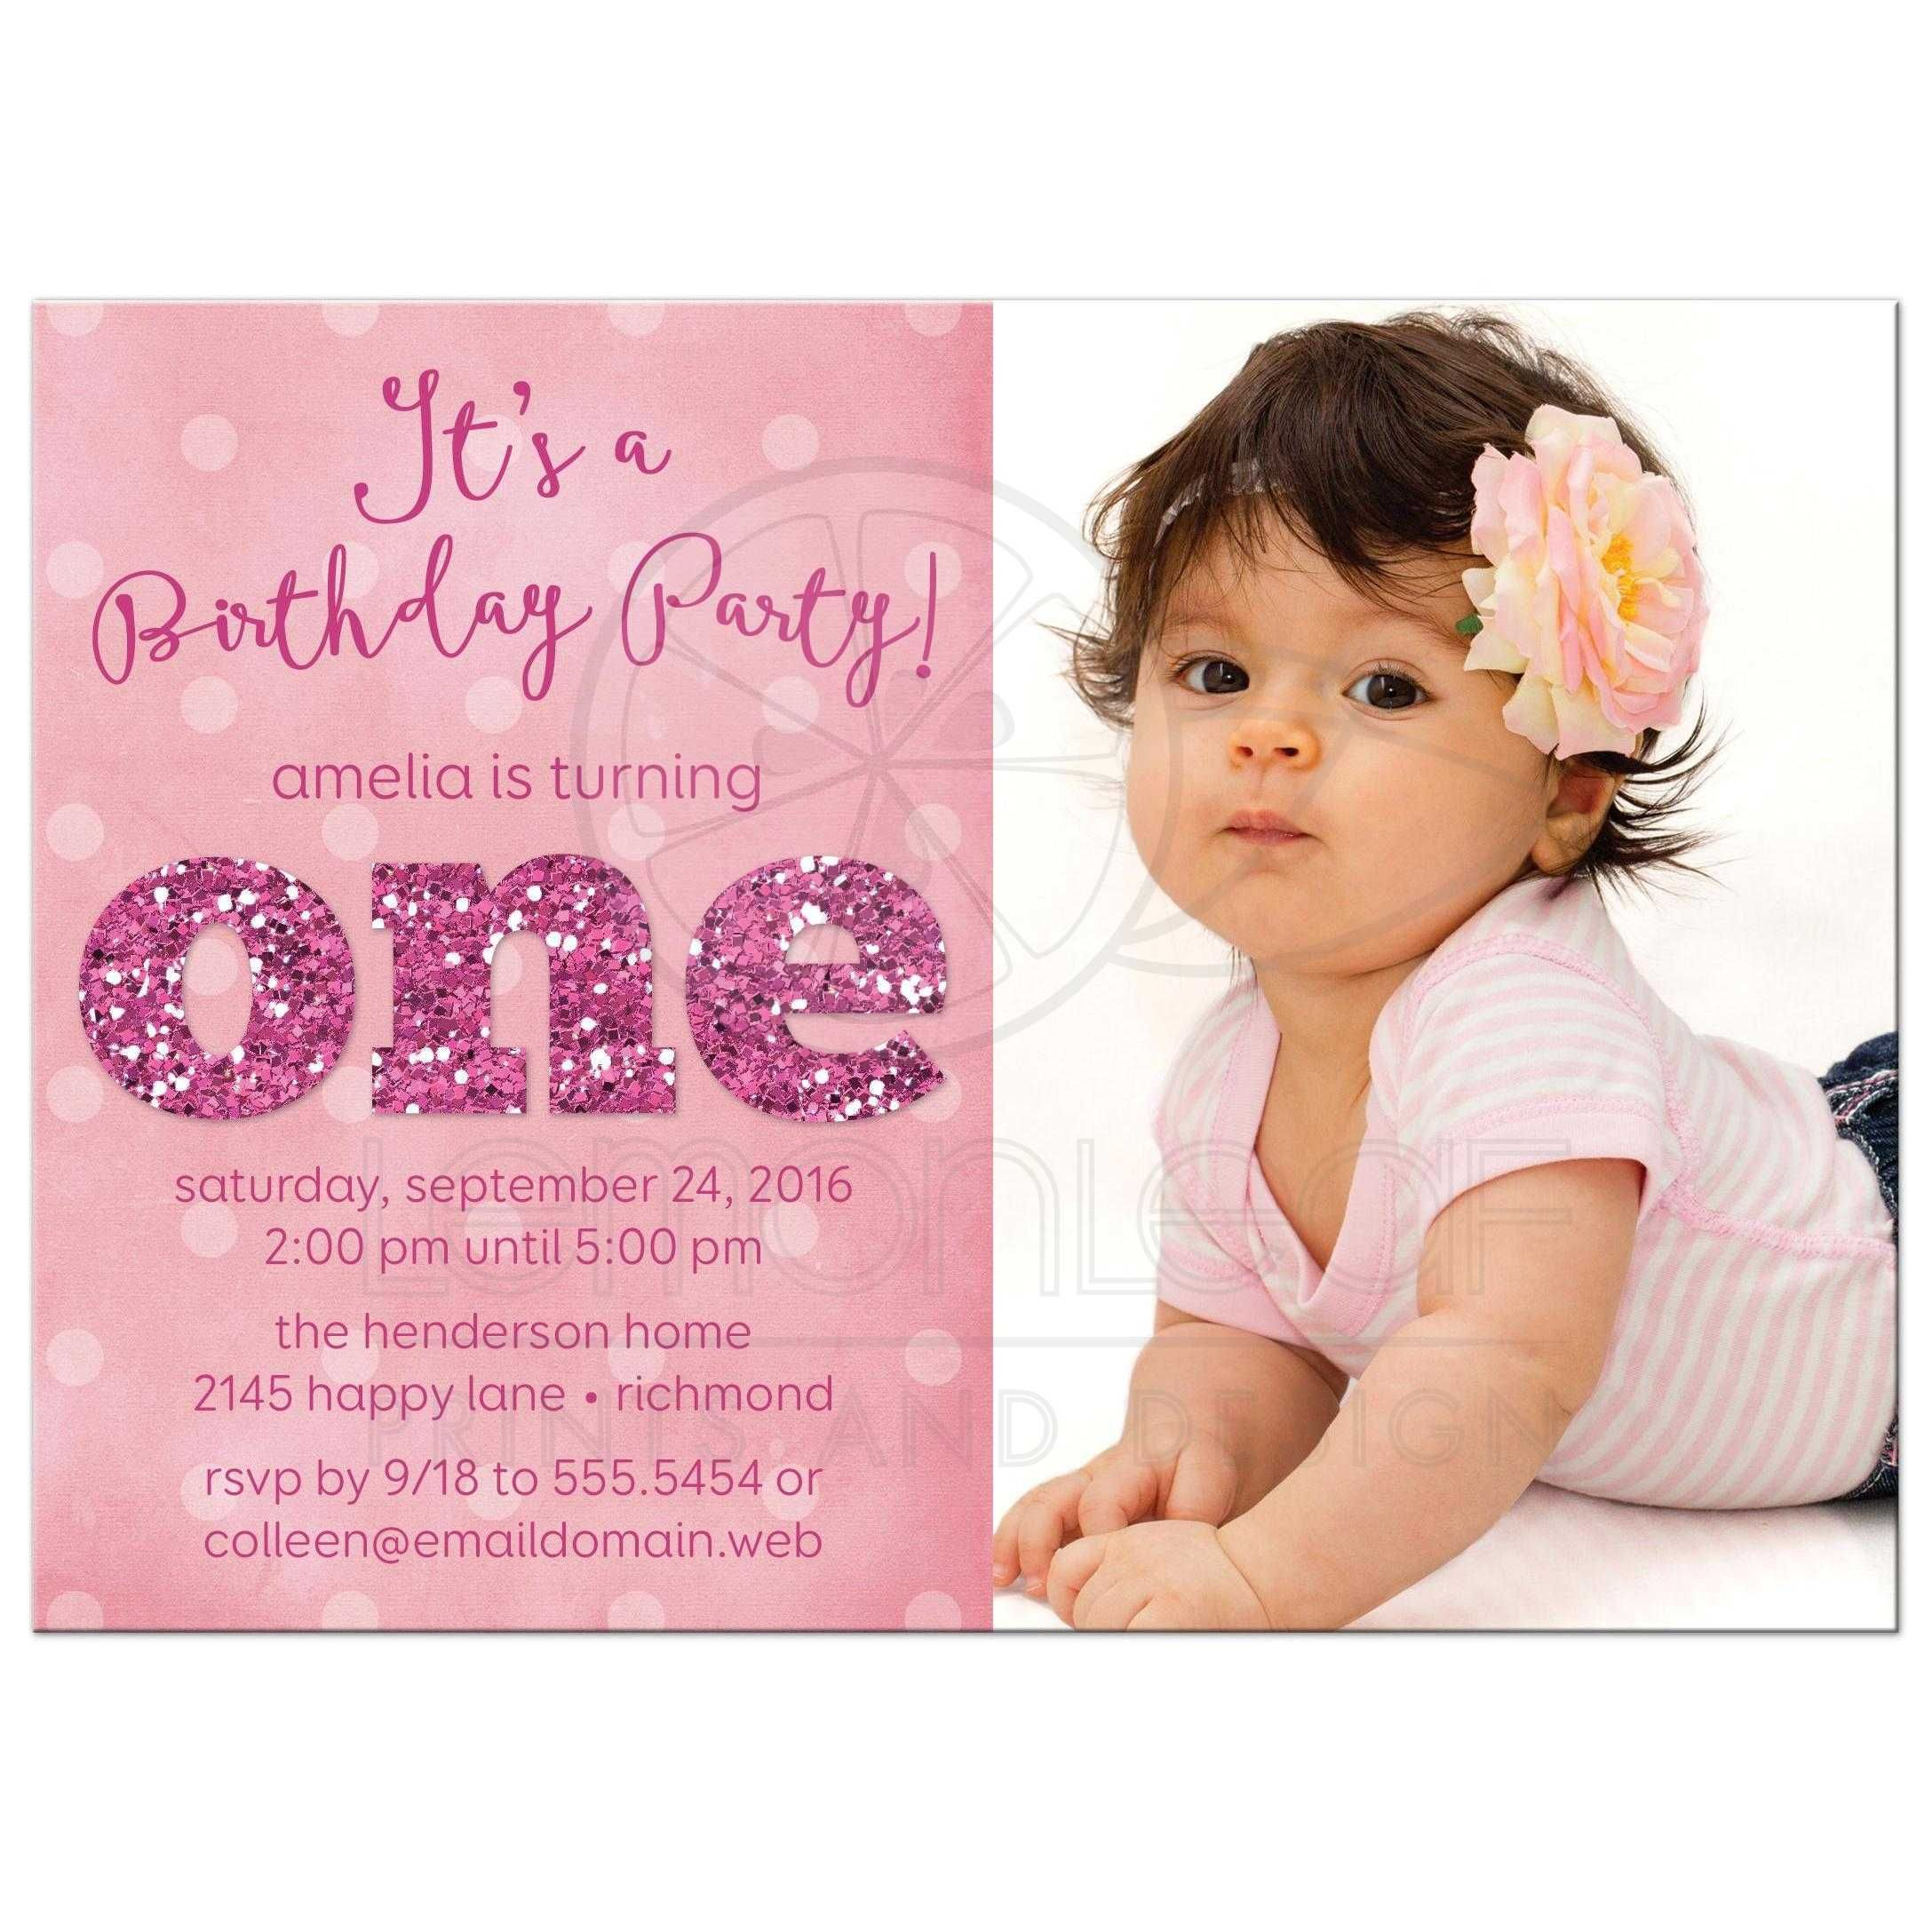 Ist birthday party photo invitations sparkle one party sparkle first birthday party invitations stopboris Choice Image